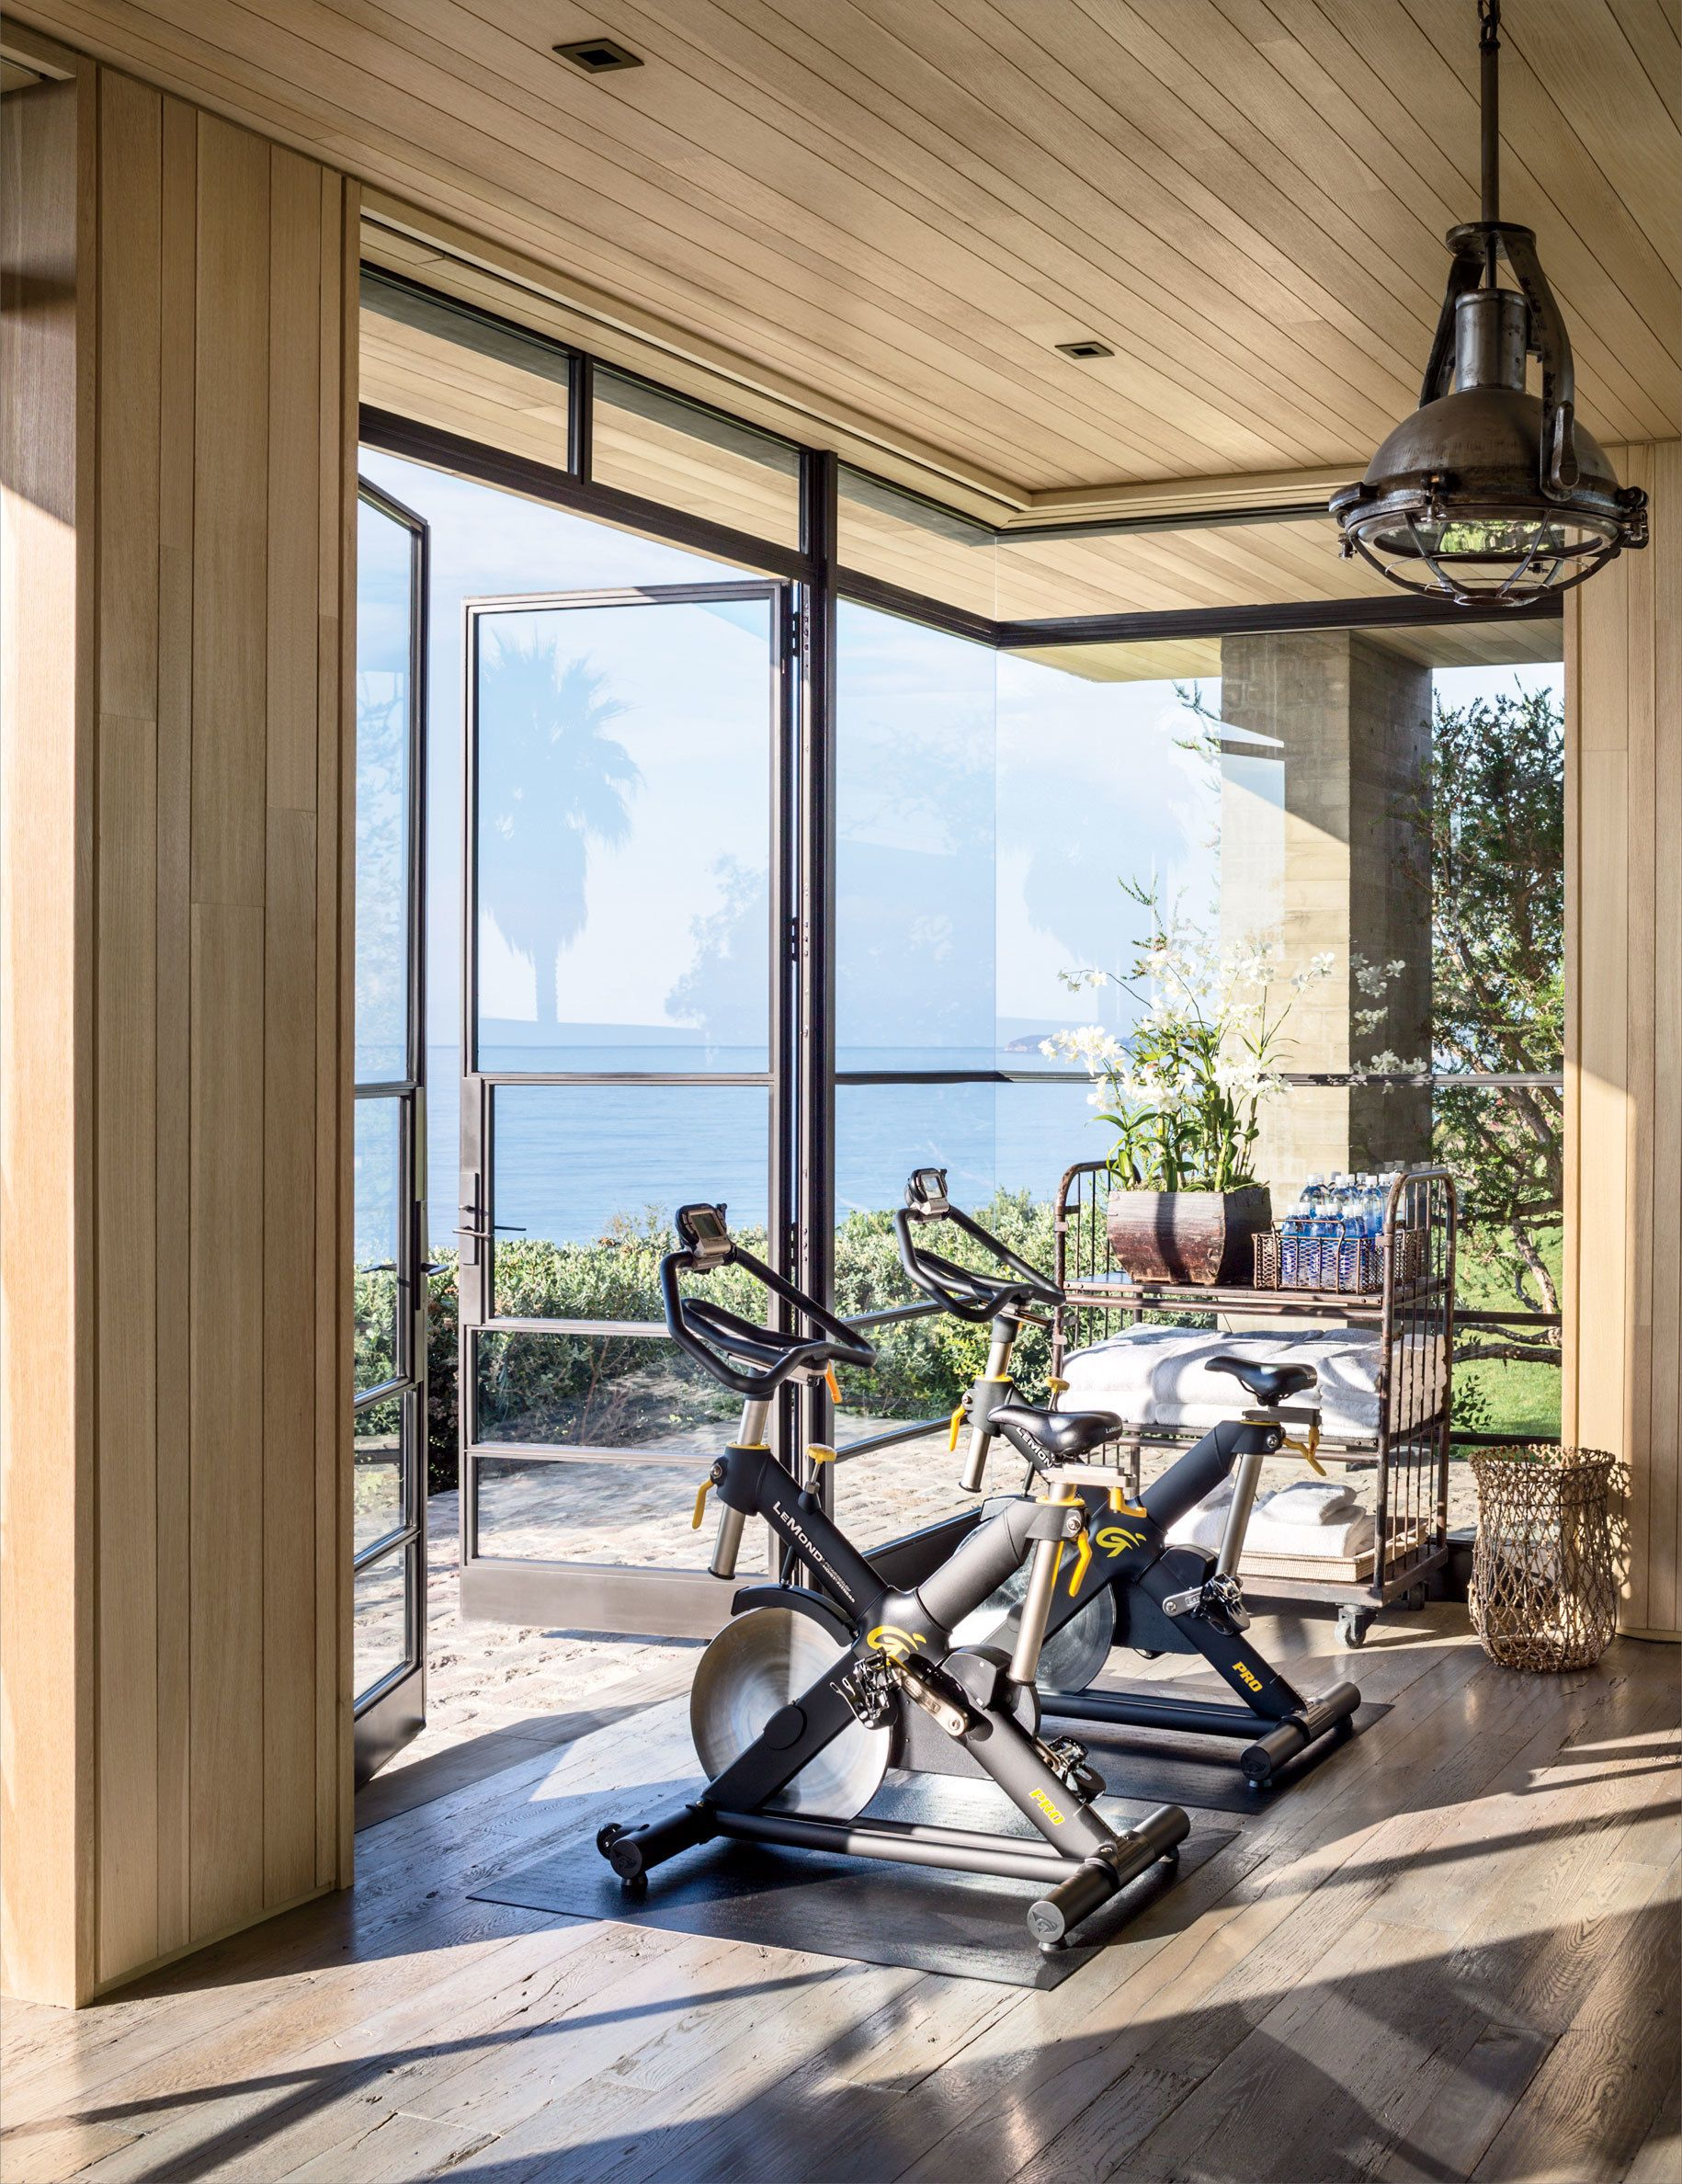 Malibu Pacific Fitness Home Gym